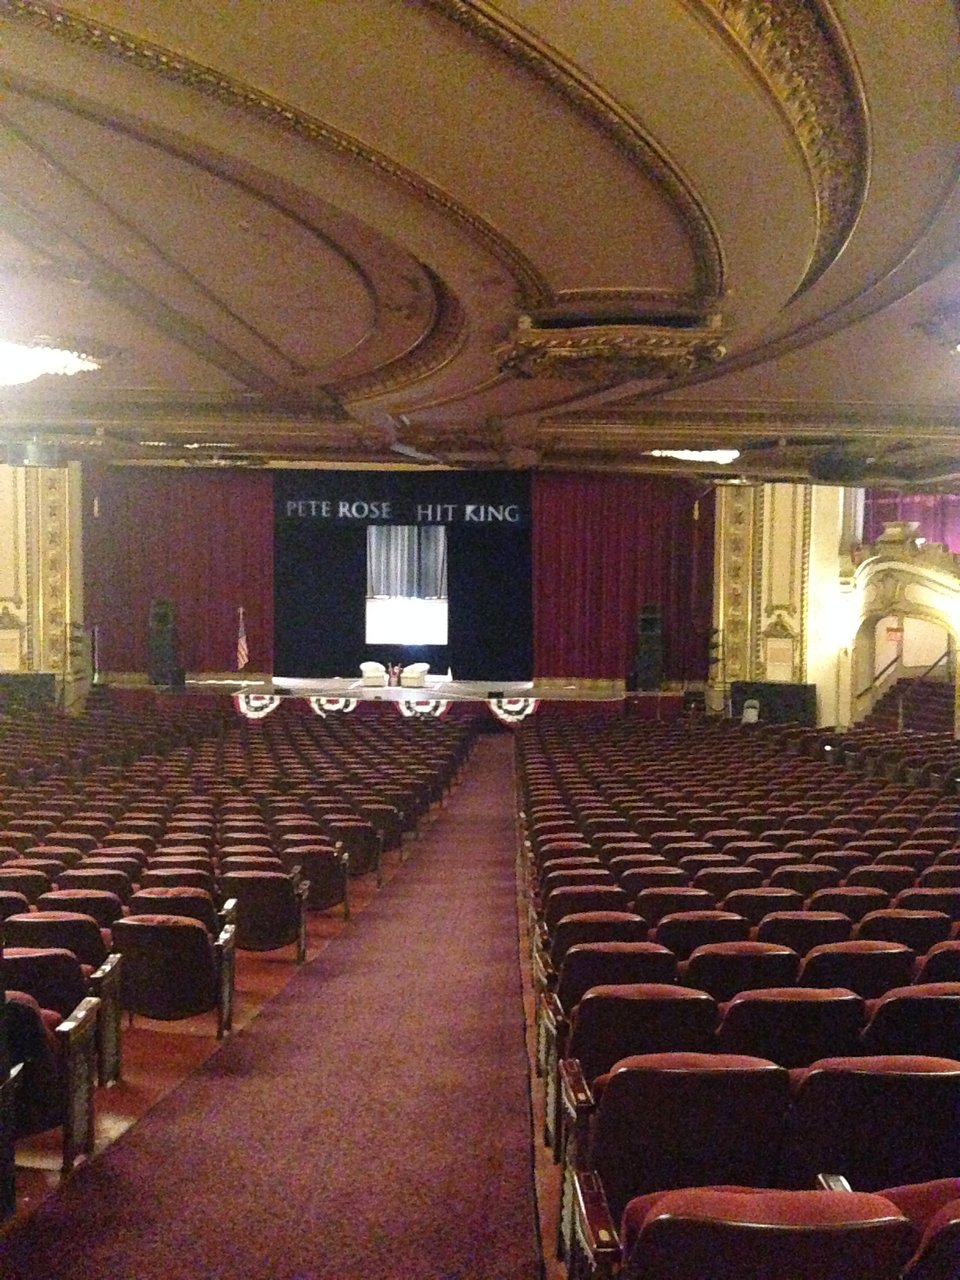 Palace Theatre Albany 2020 All You Need To Know Before You Go With Photos Tripadvisor